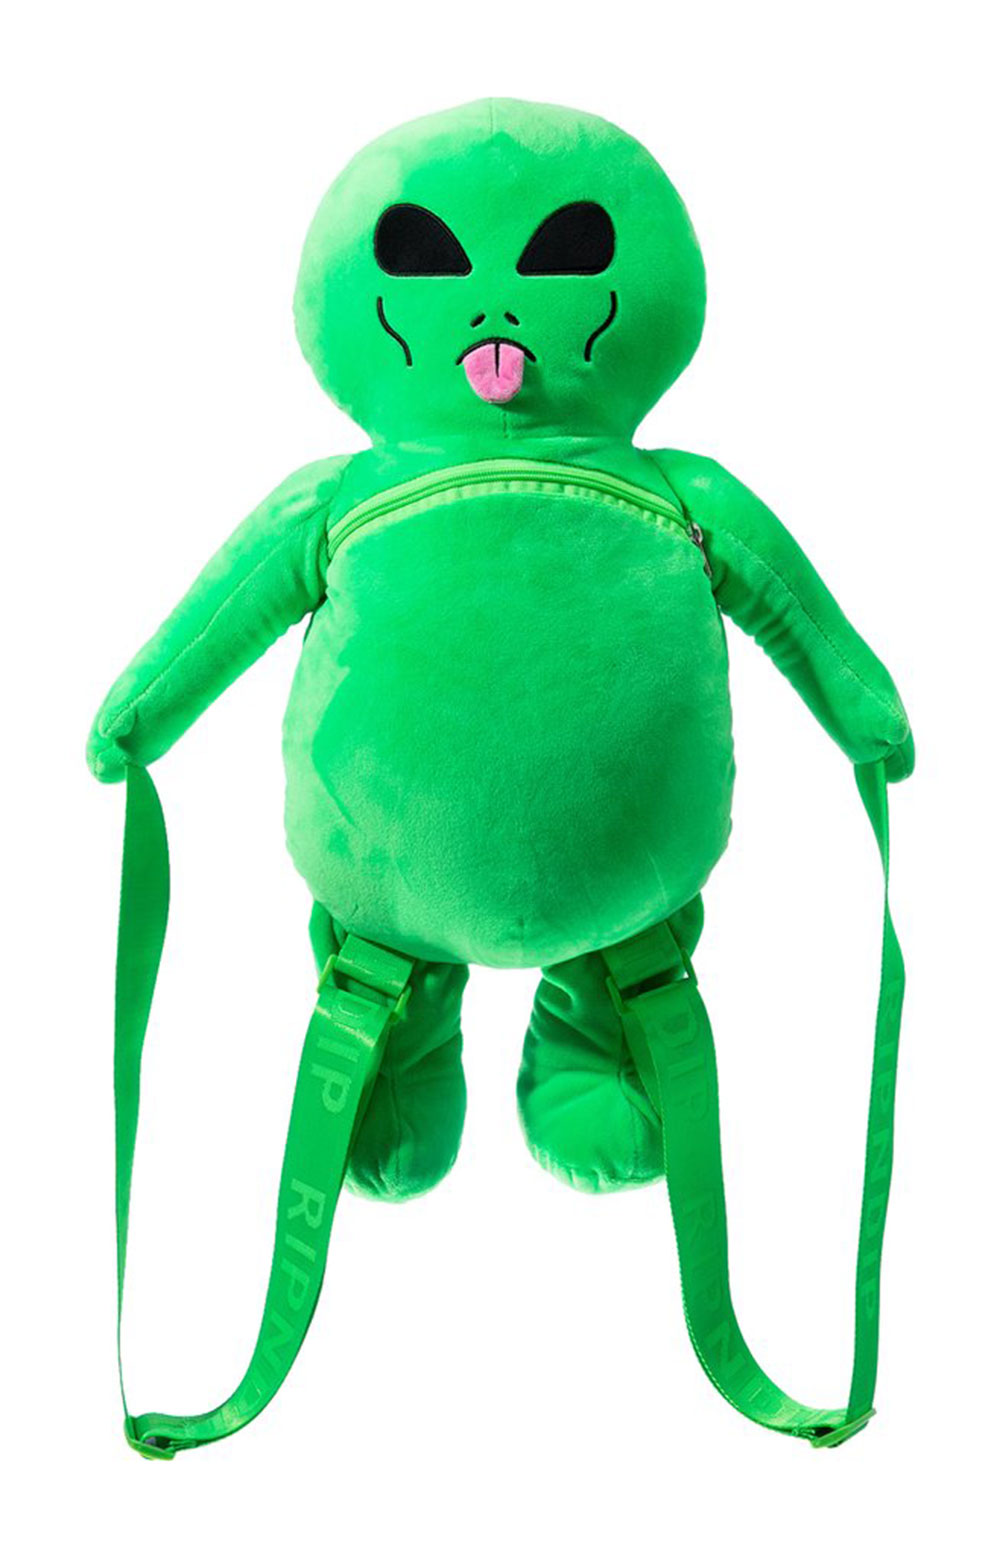 Lord Alien Plush Backpack - Green